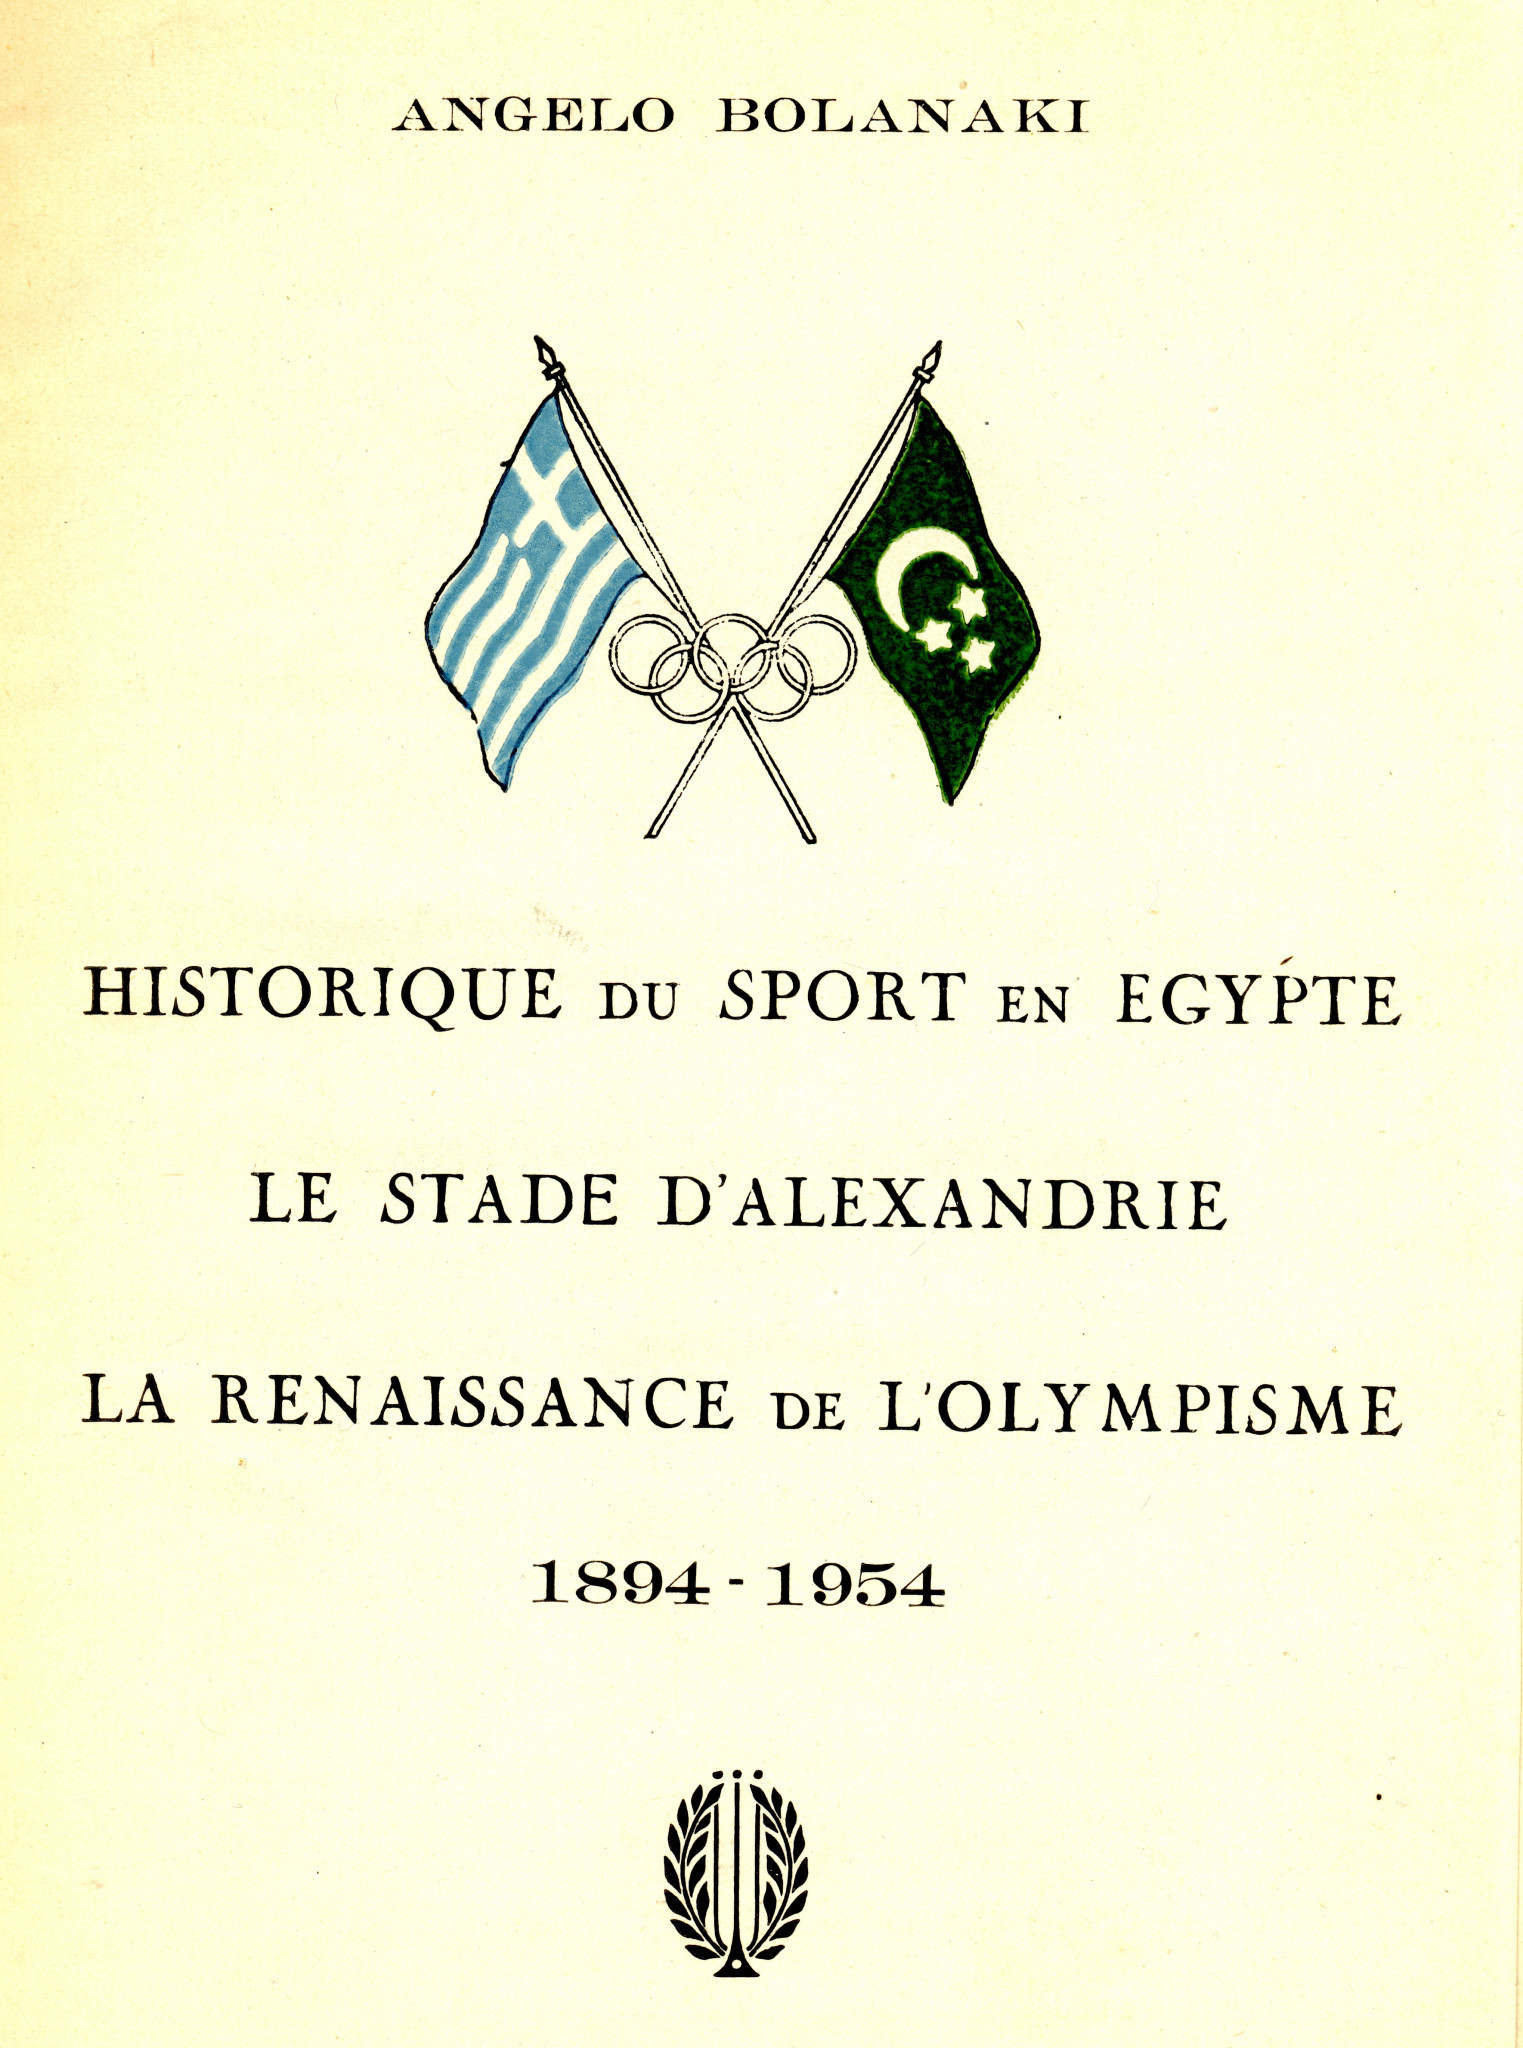 The front cover of a document by Angelo Bolanaki about the history of the Stade d'Alexandrie ©Philip Barker